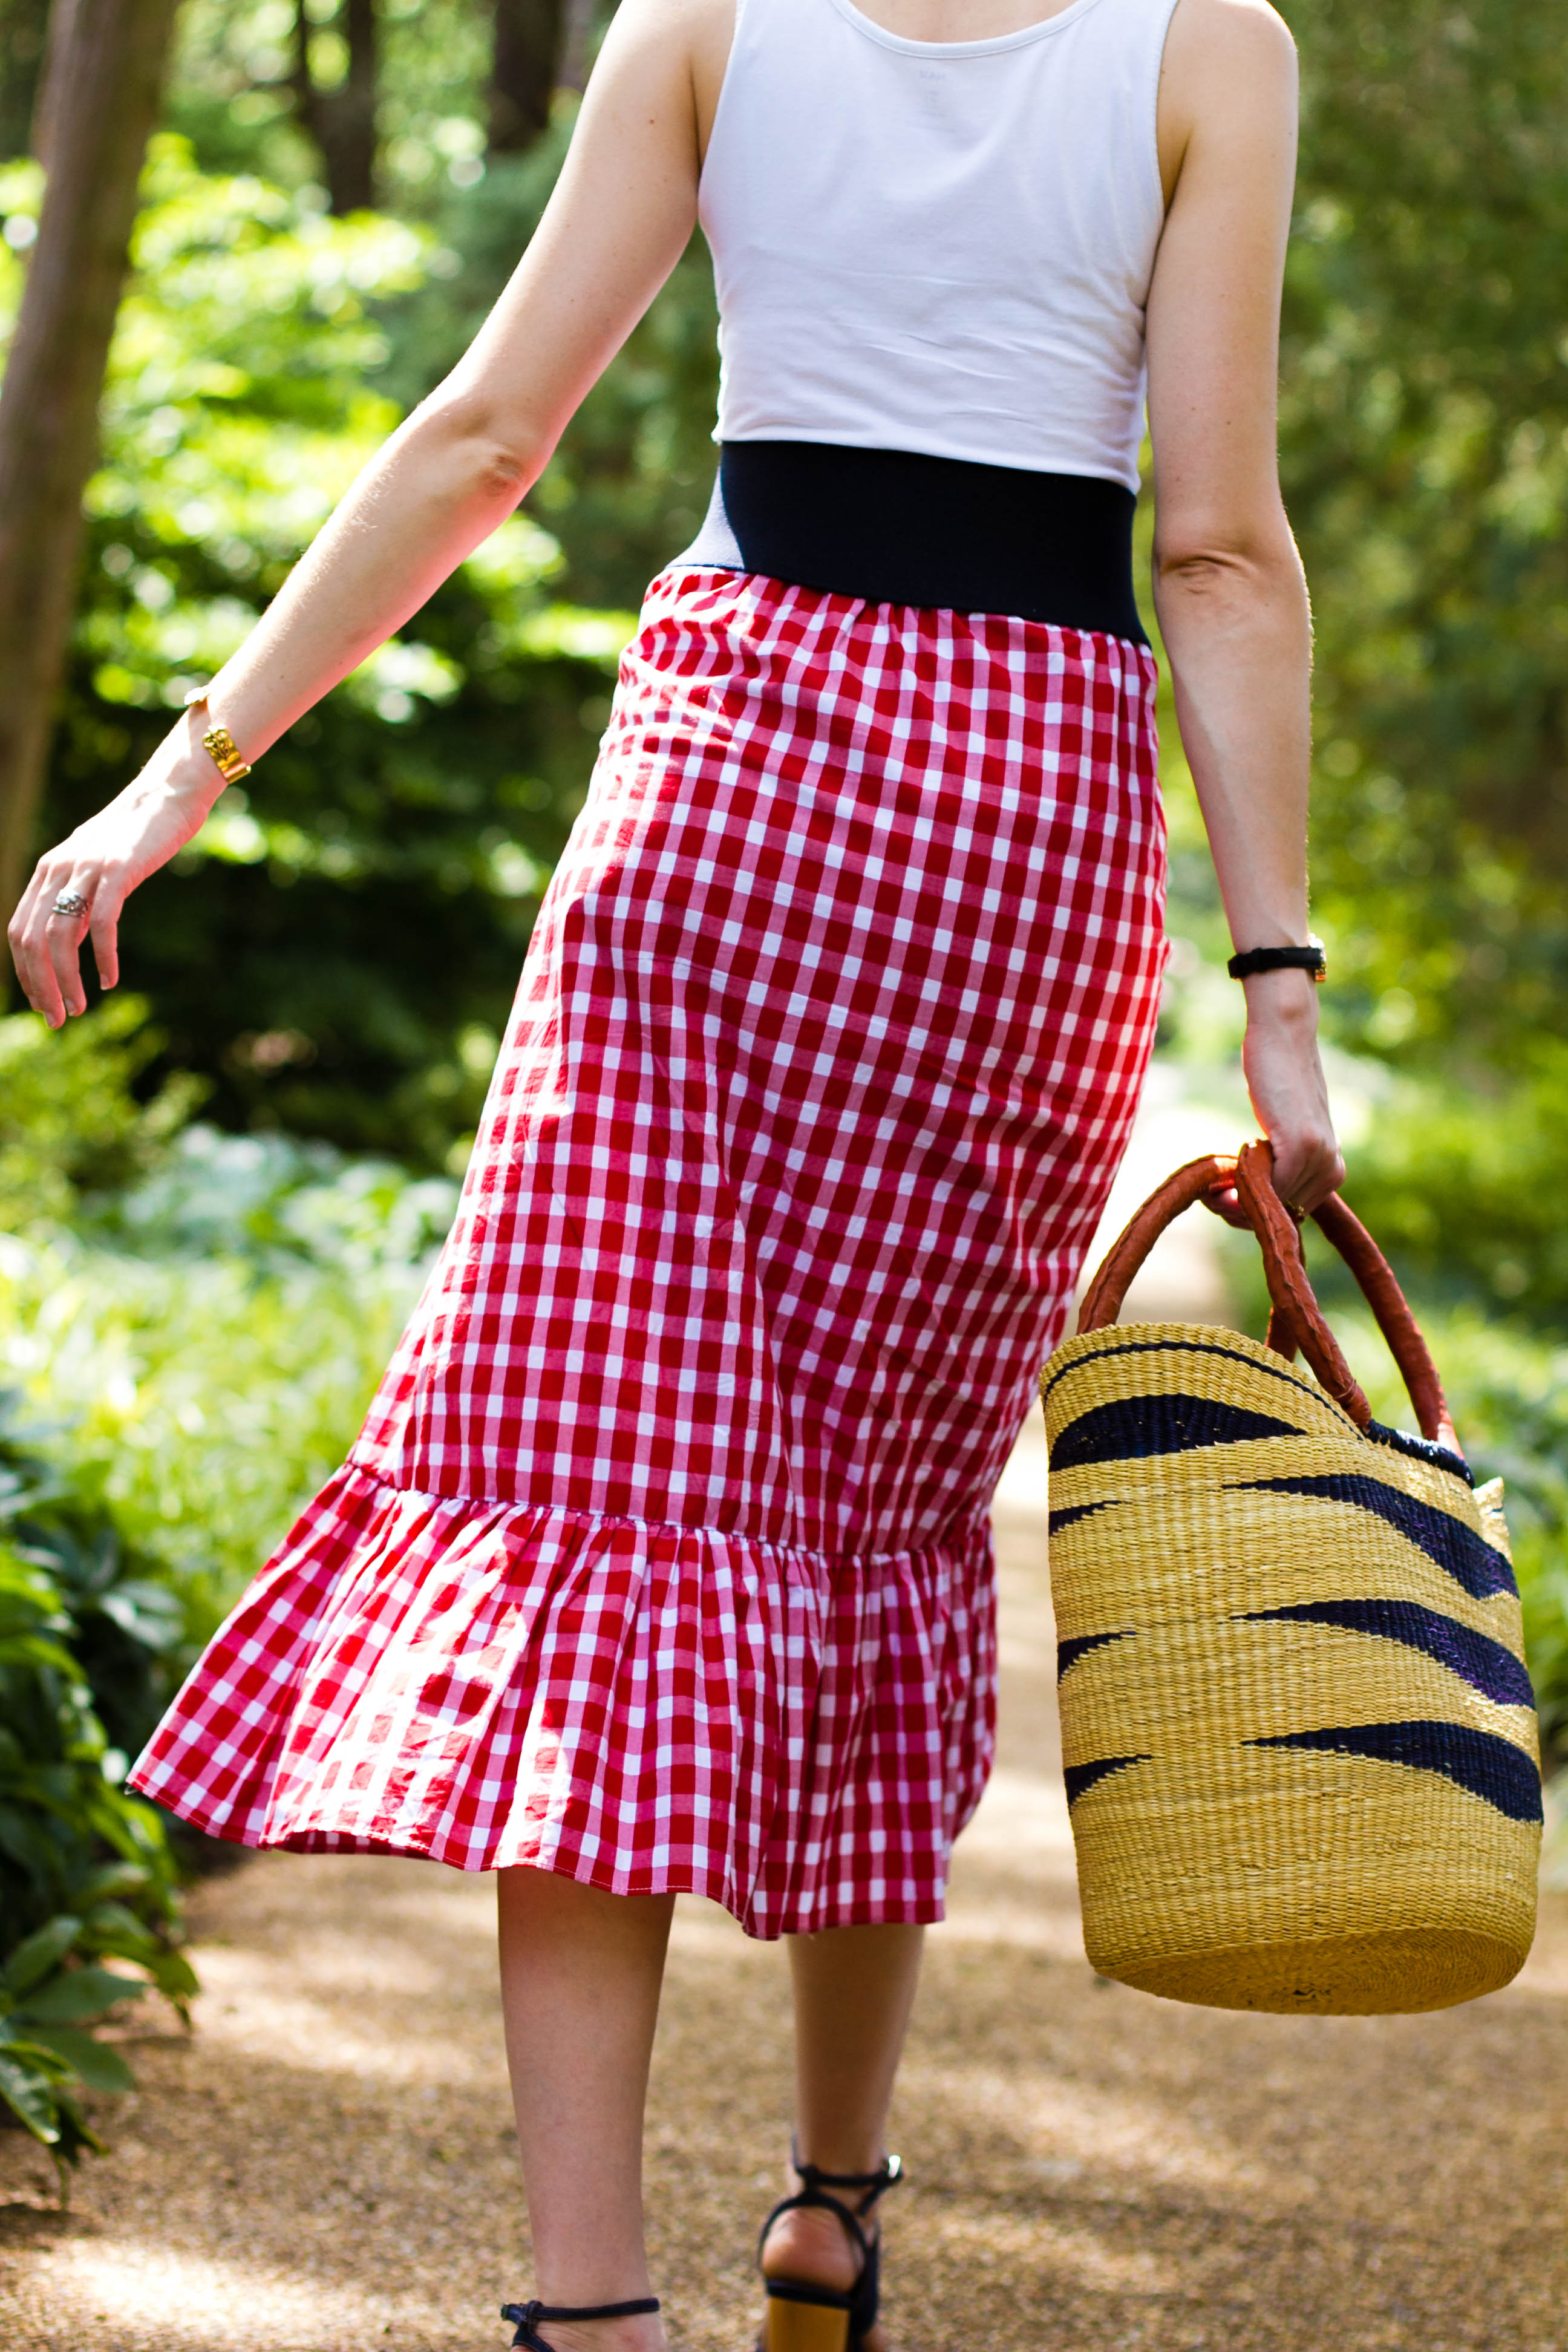 Zara gingham skirt, straw bag, and Cluse watch